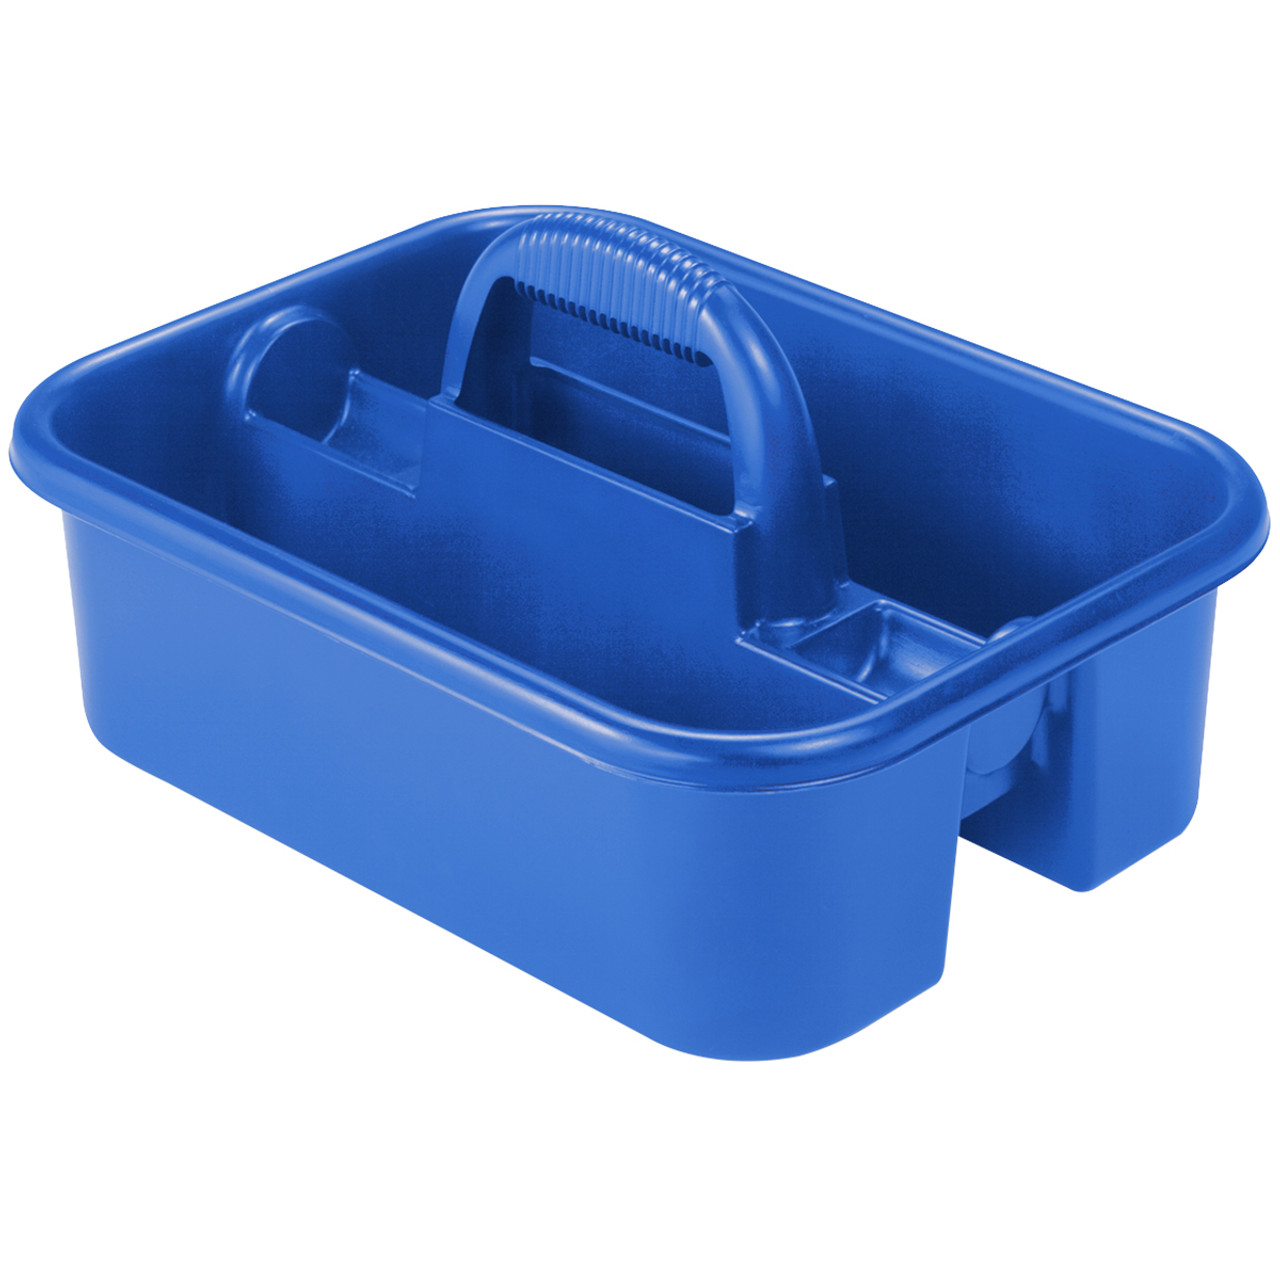 Caddy, Tote Caddy 13-7/8 x 18-3/8 x 9, Blue  09185BLUE